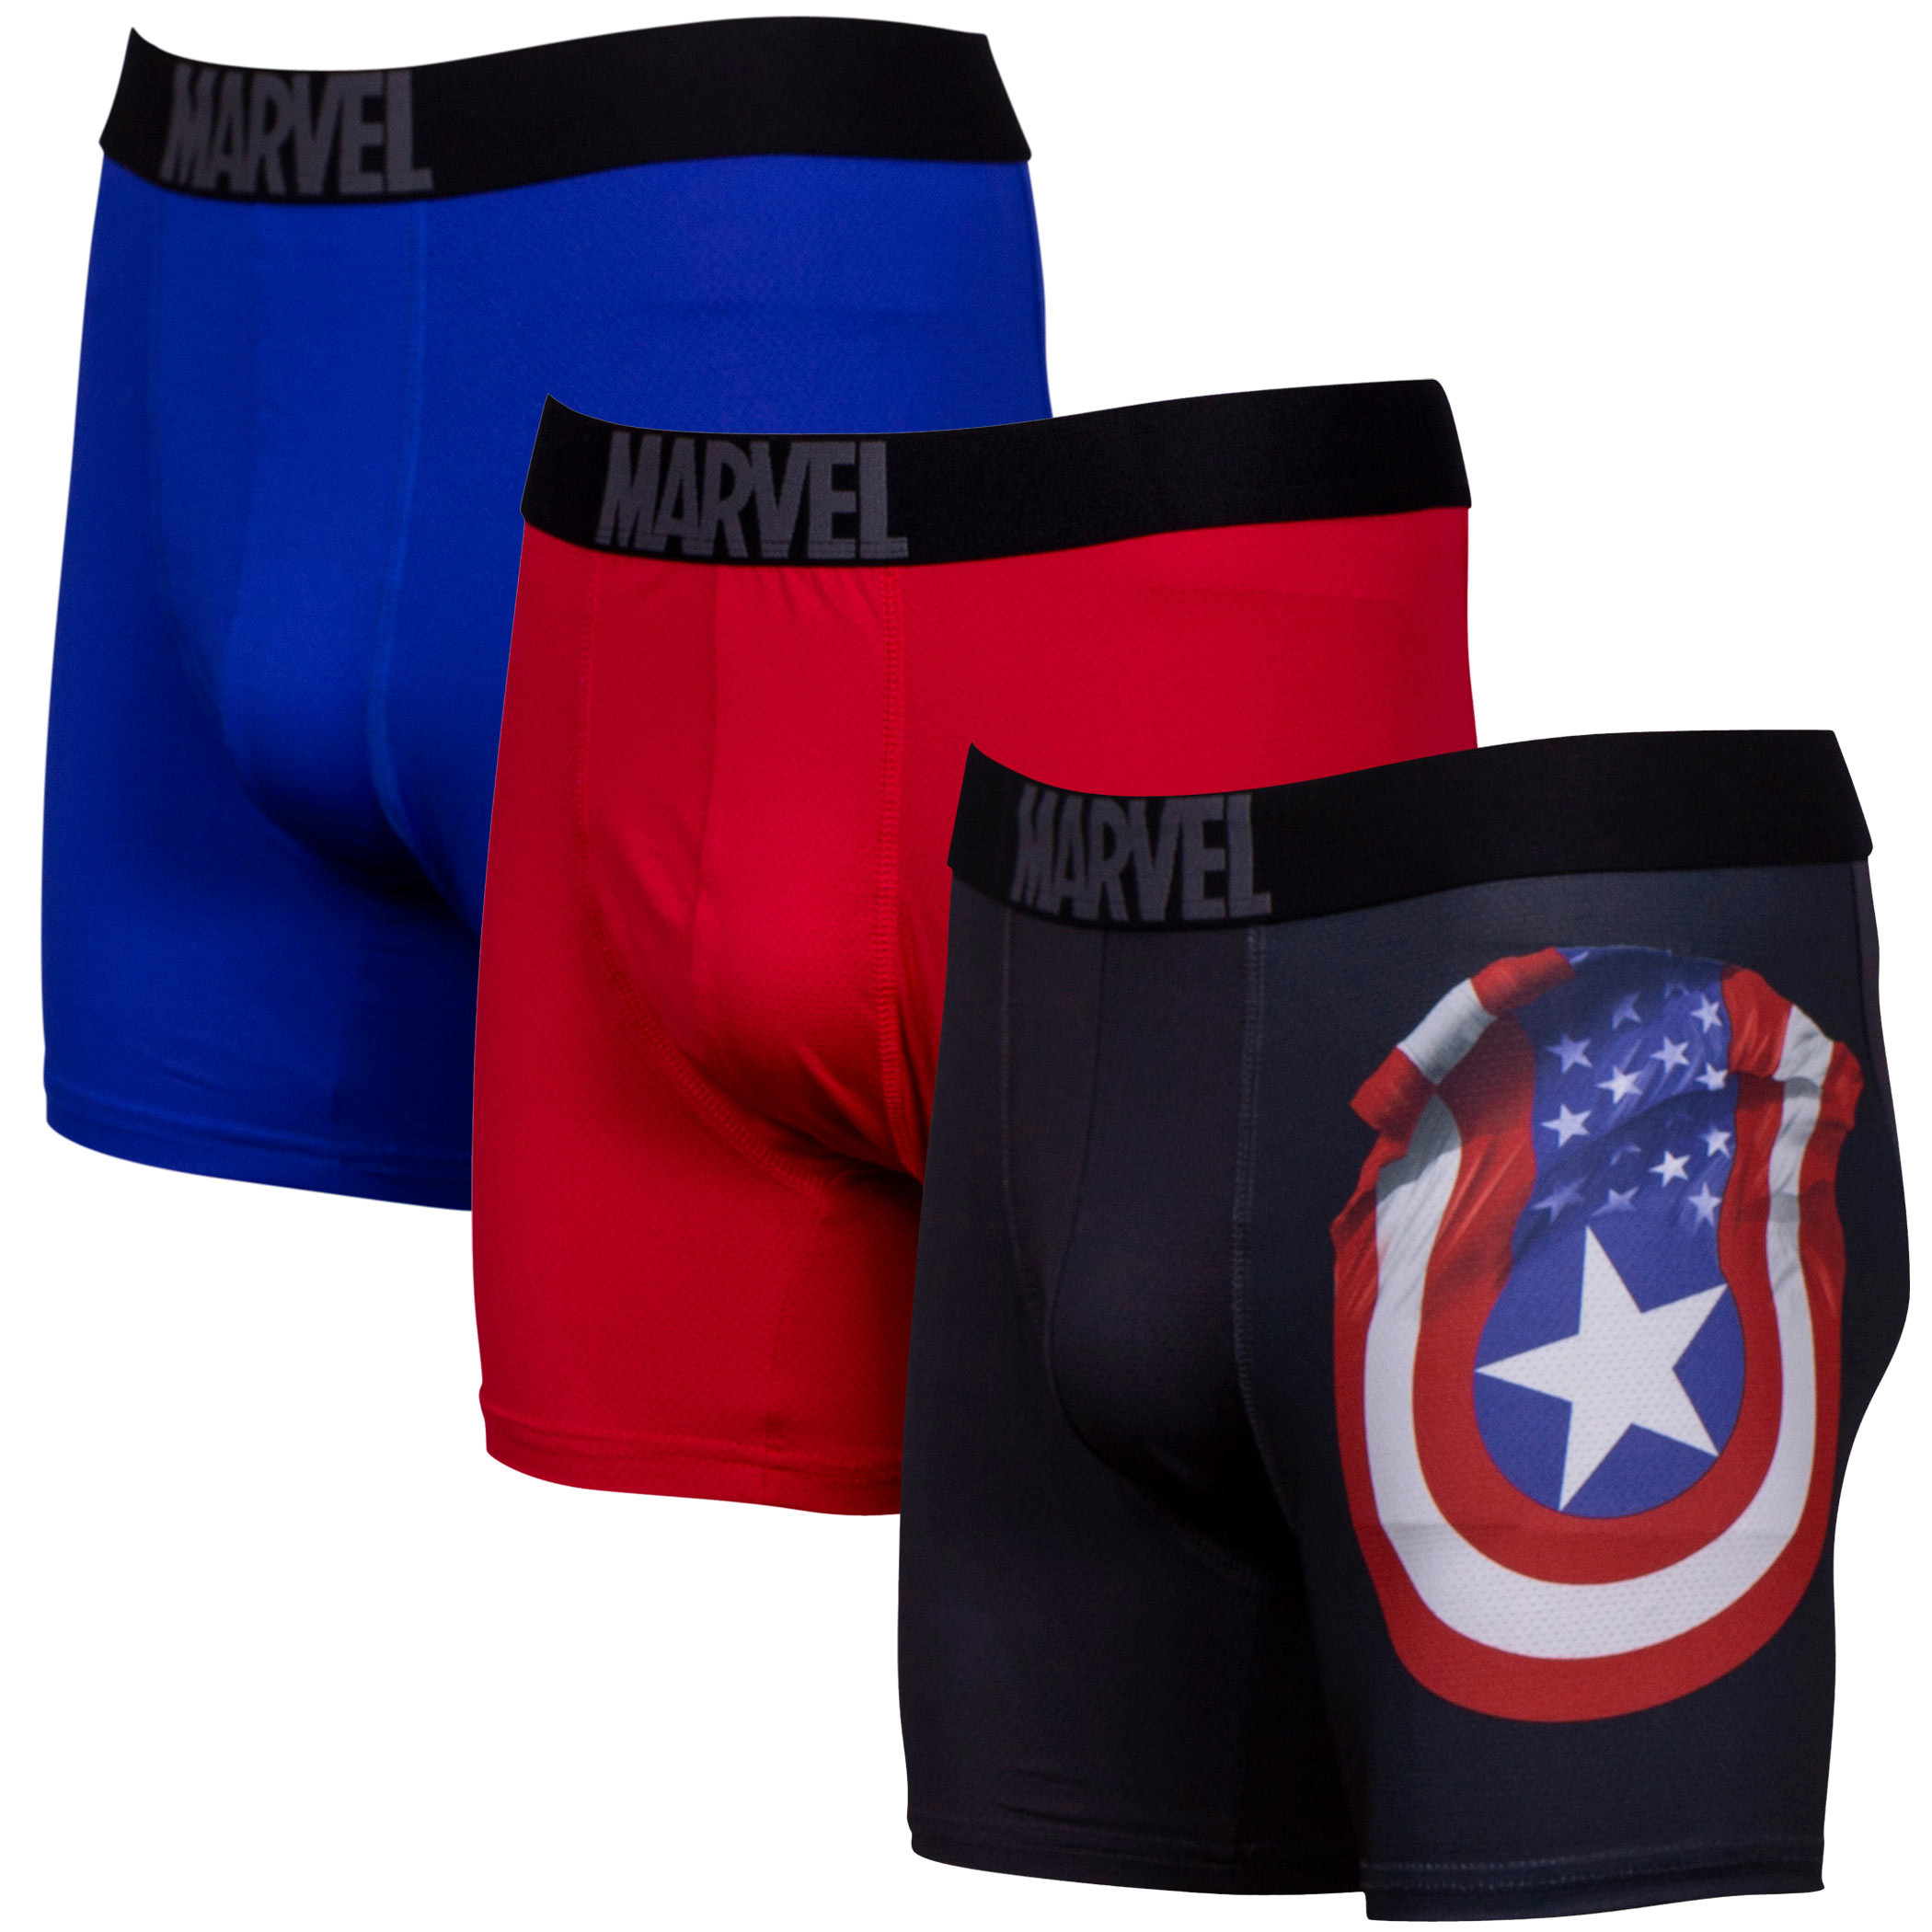 Captain America Performance Mesh Underwear Boxer Briefs 3-Pair Pack